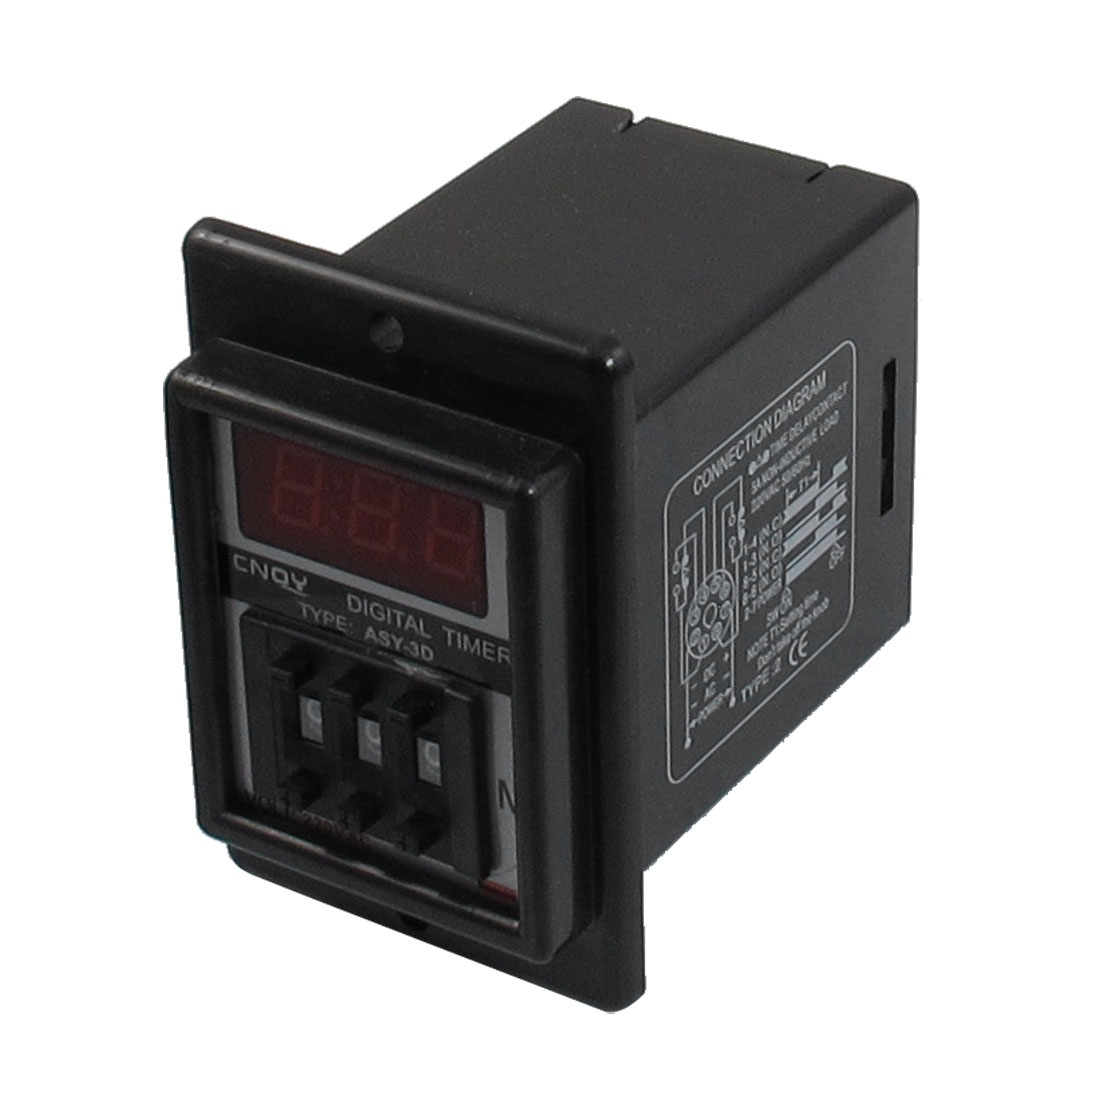 ASY-3D AC 220V 99.9 Minute Digital Timer Programmable Time Delay Relay Black